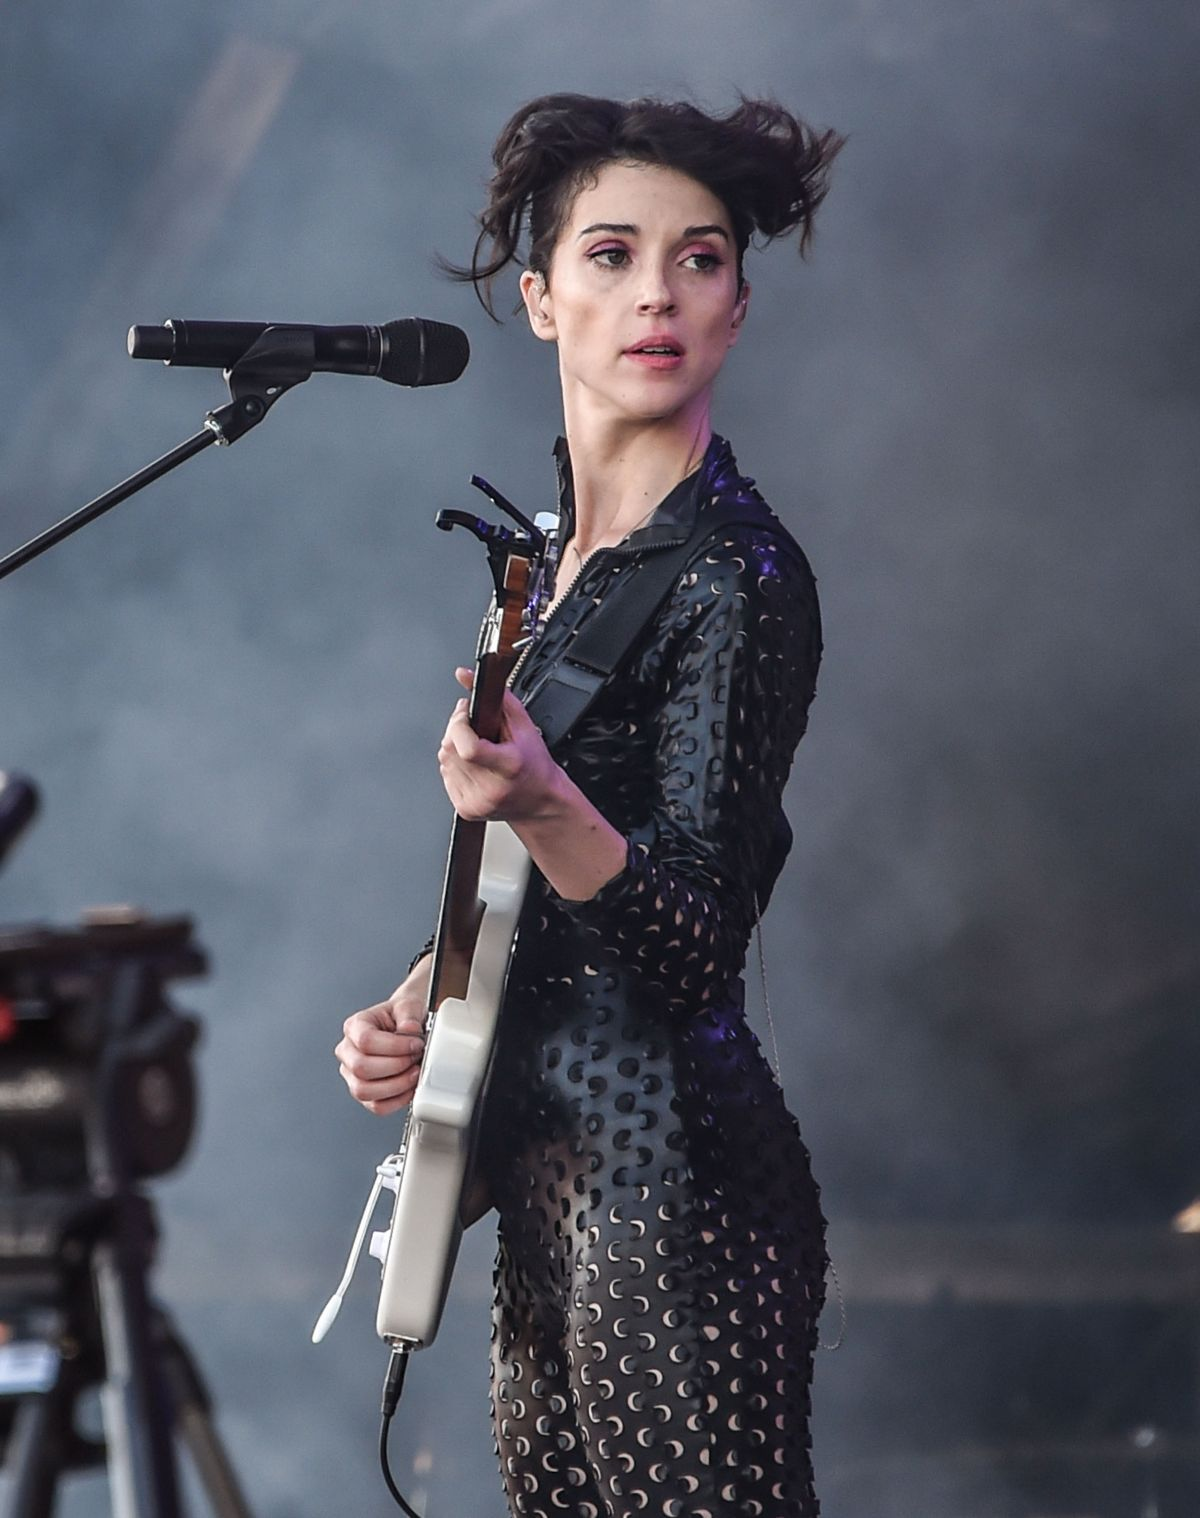 annie clark who dated who